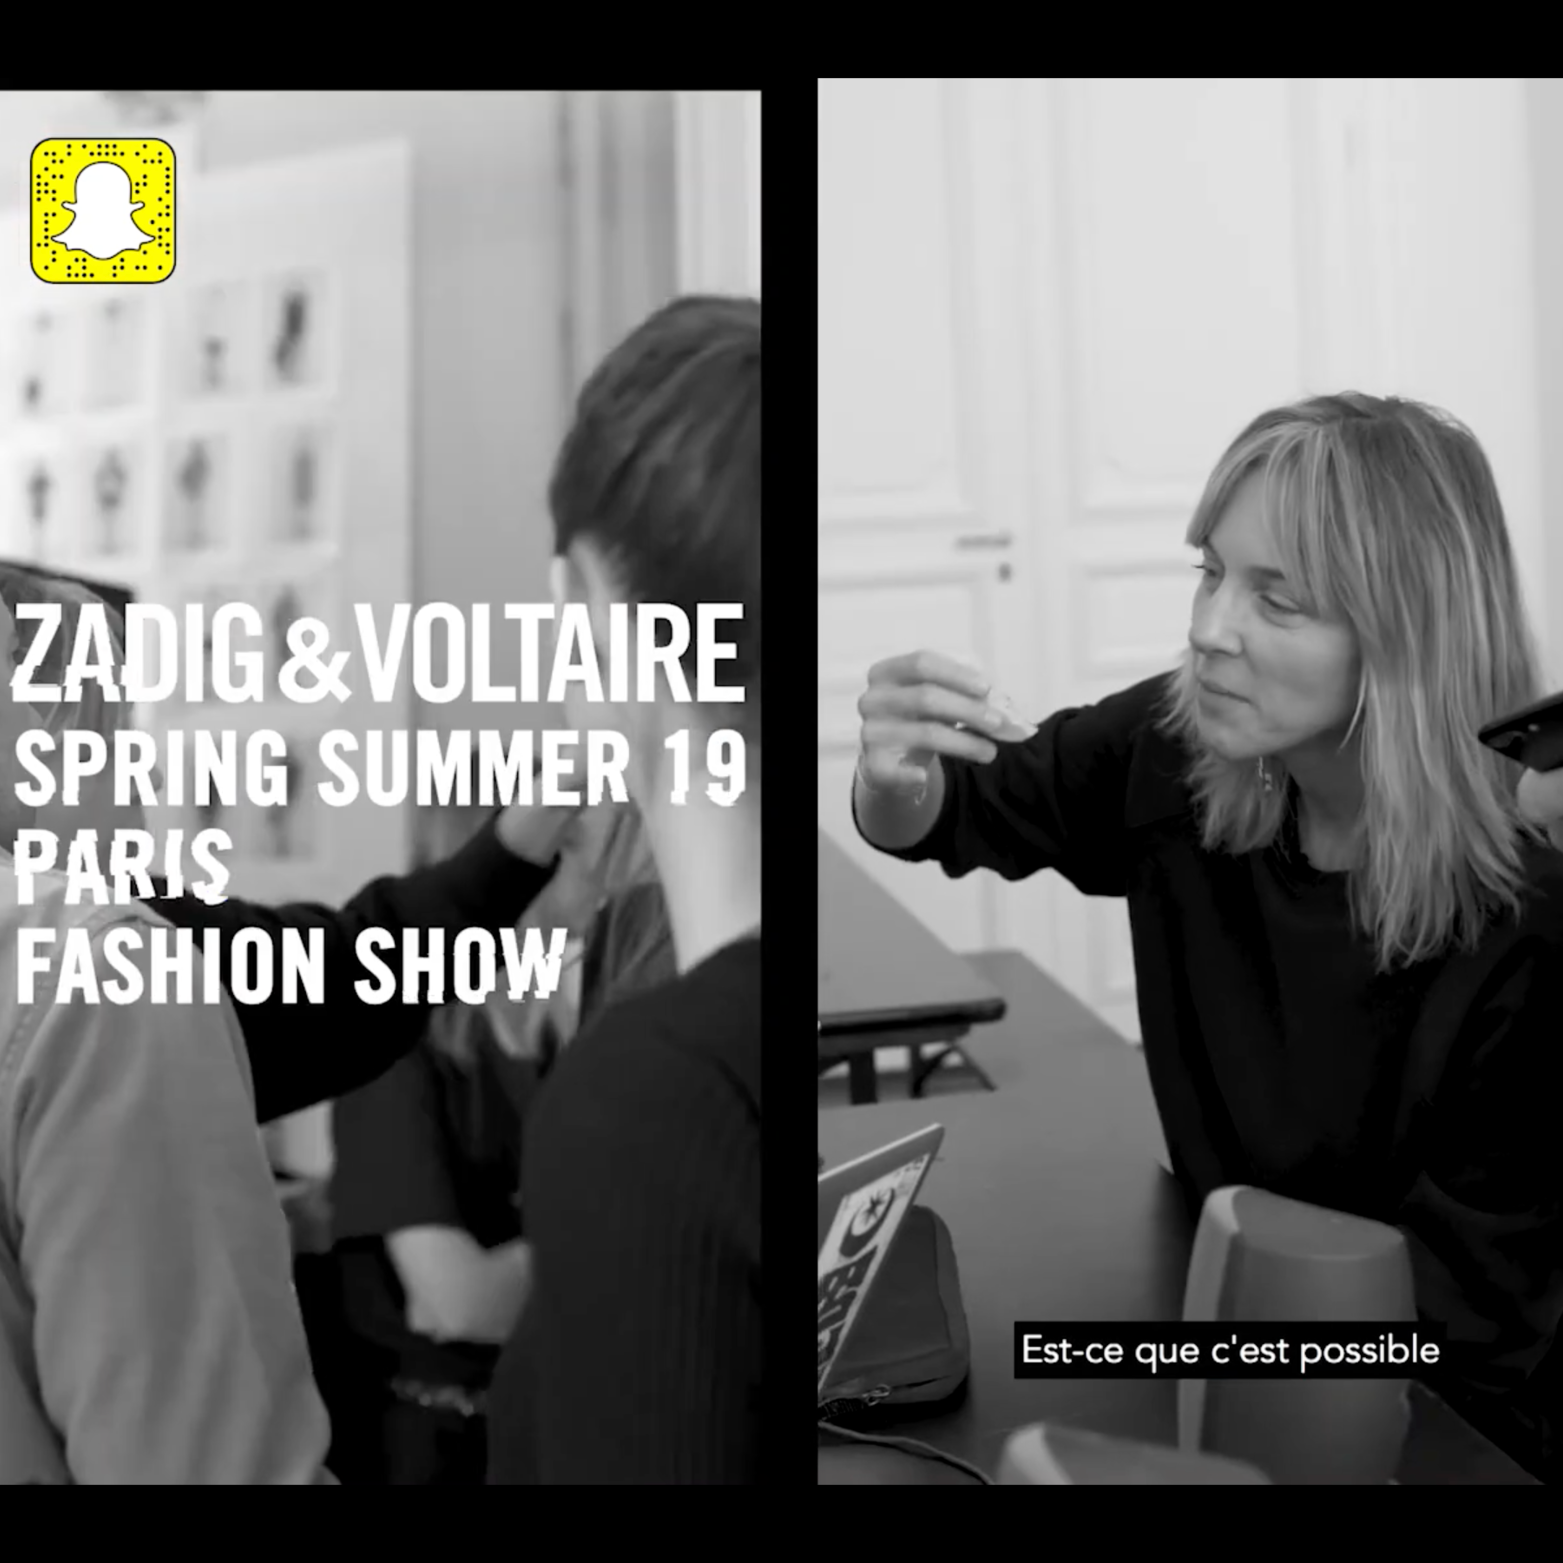 zadig et voltaire snapchat ad - Motion Design